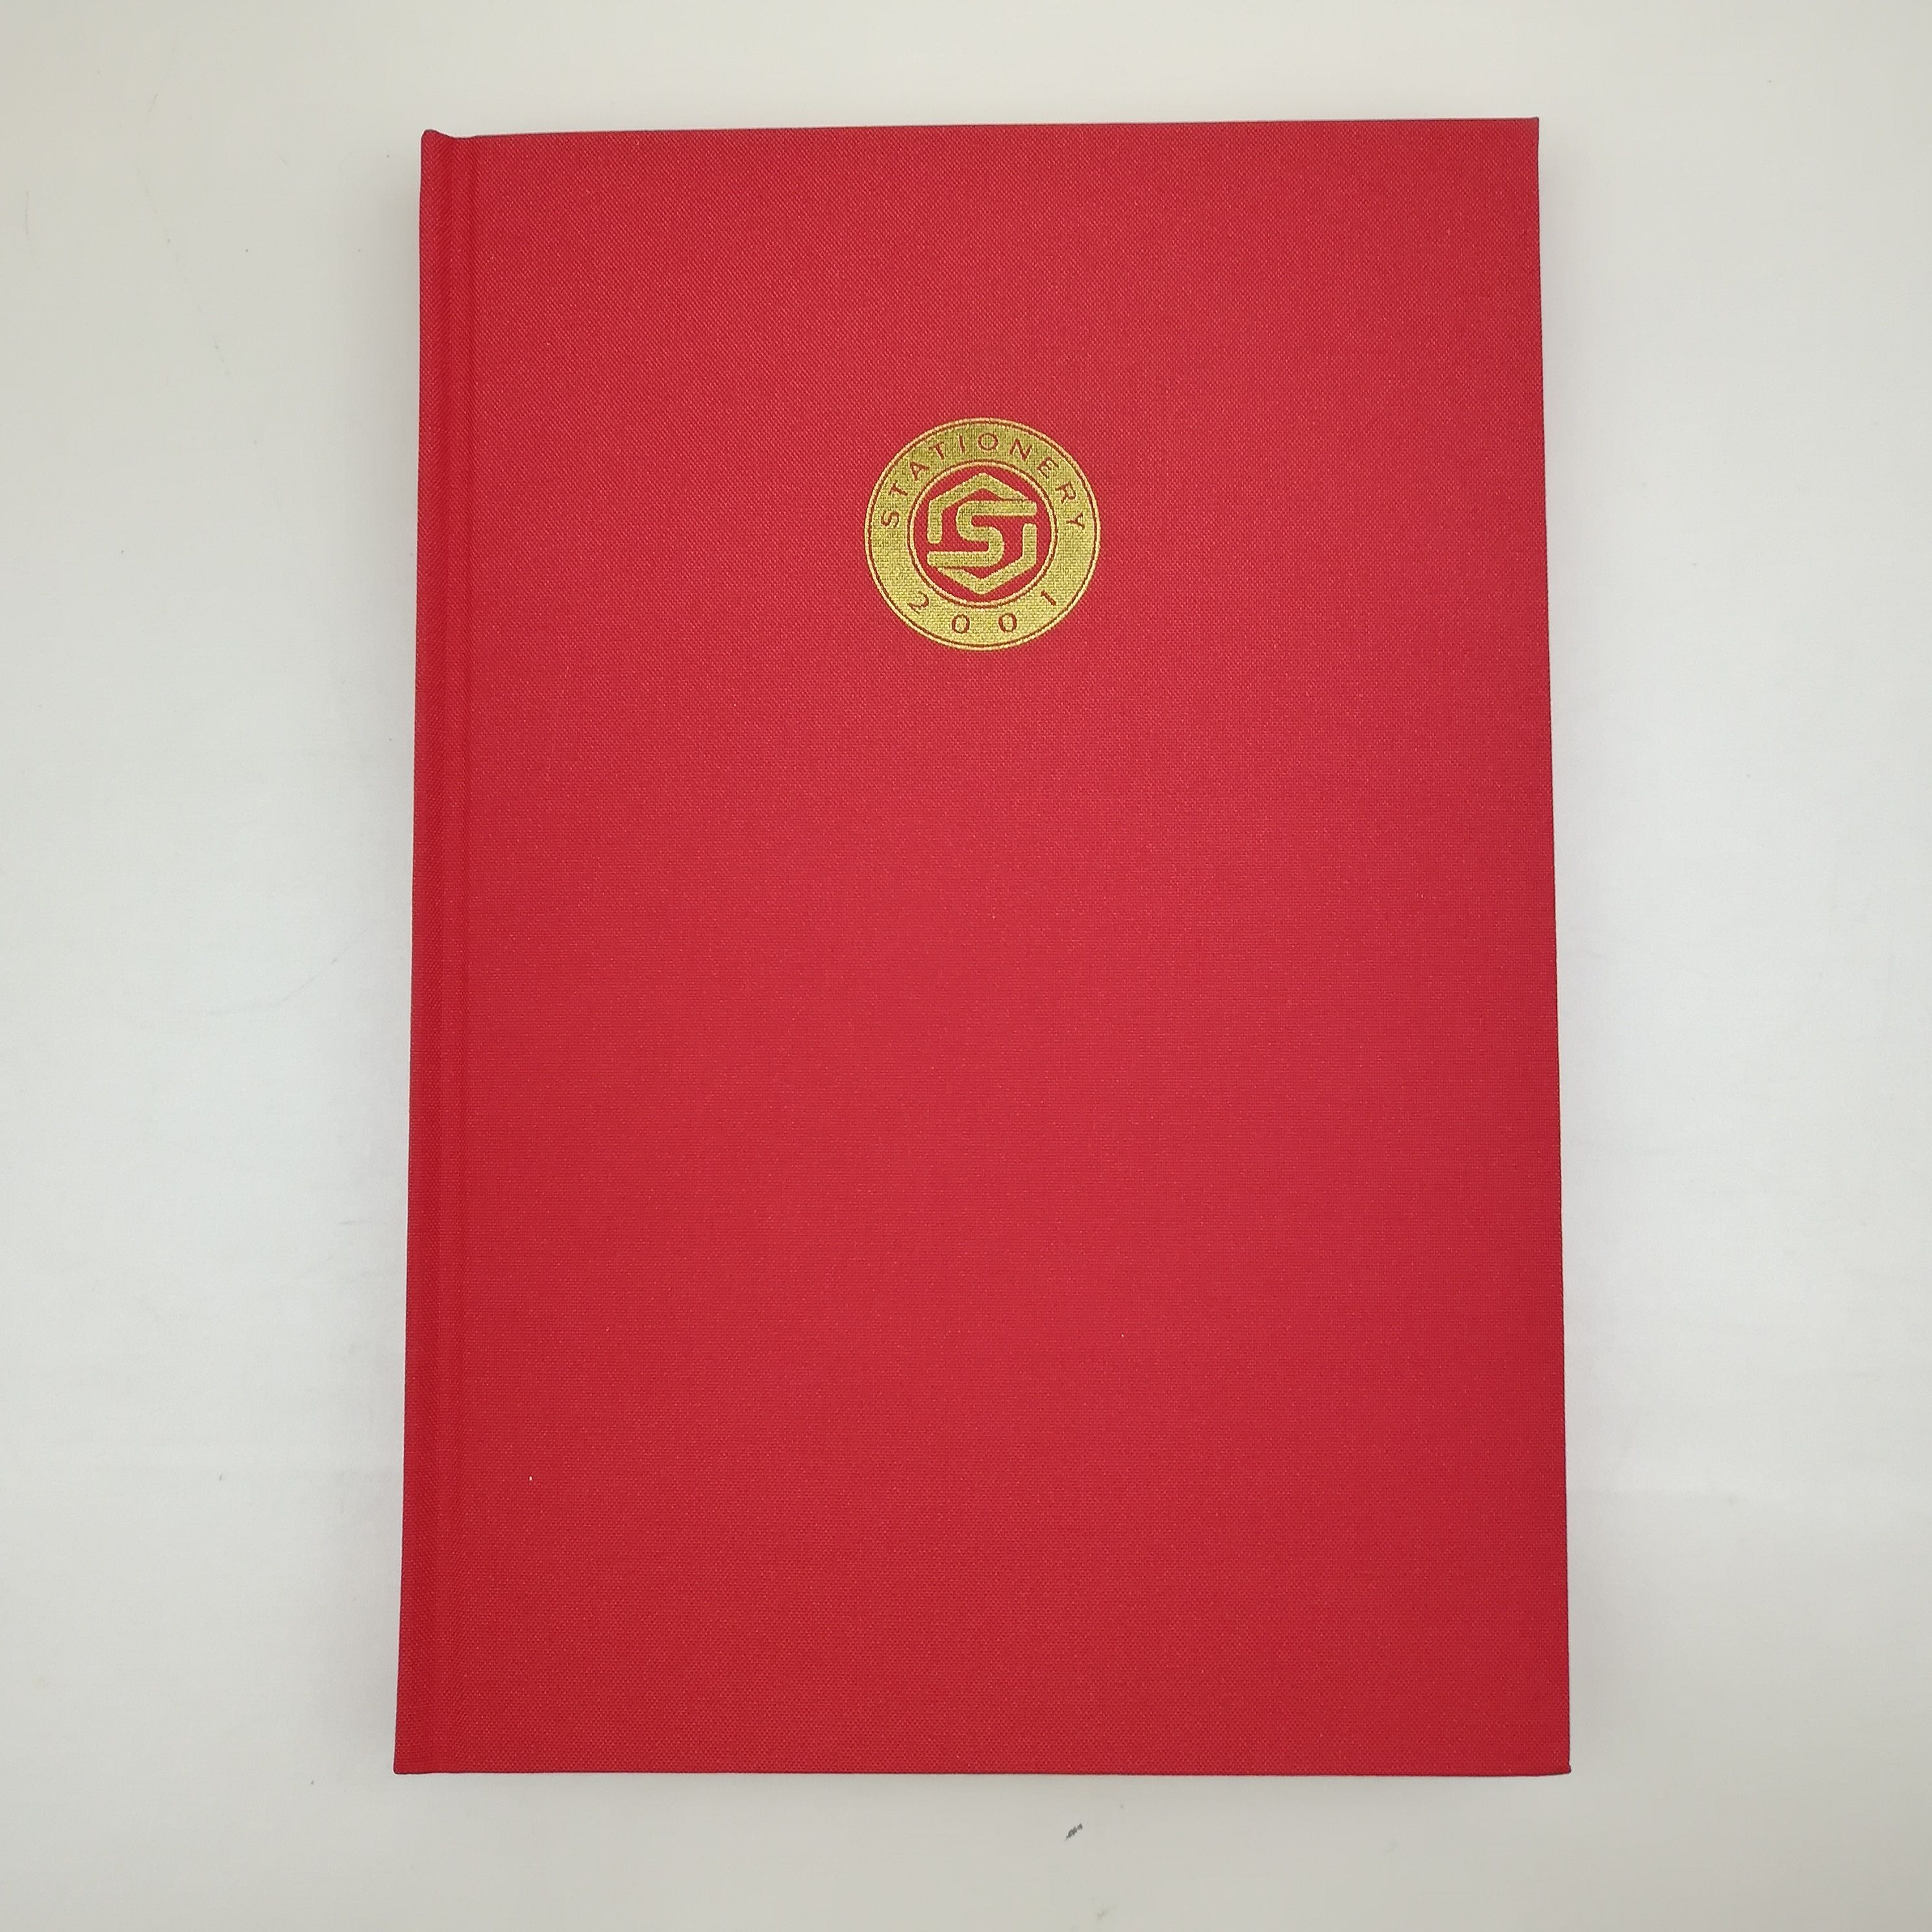 linen perfect bound notebook with golf foil stamping logo